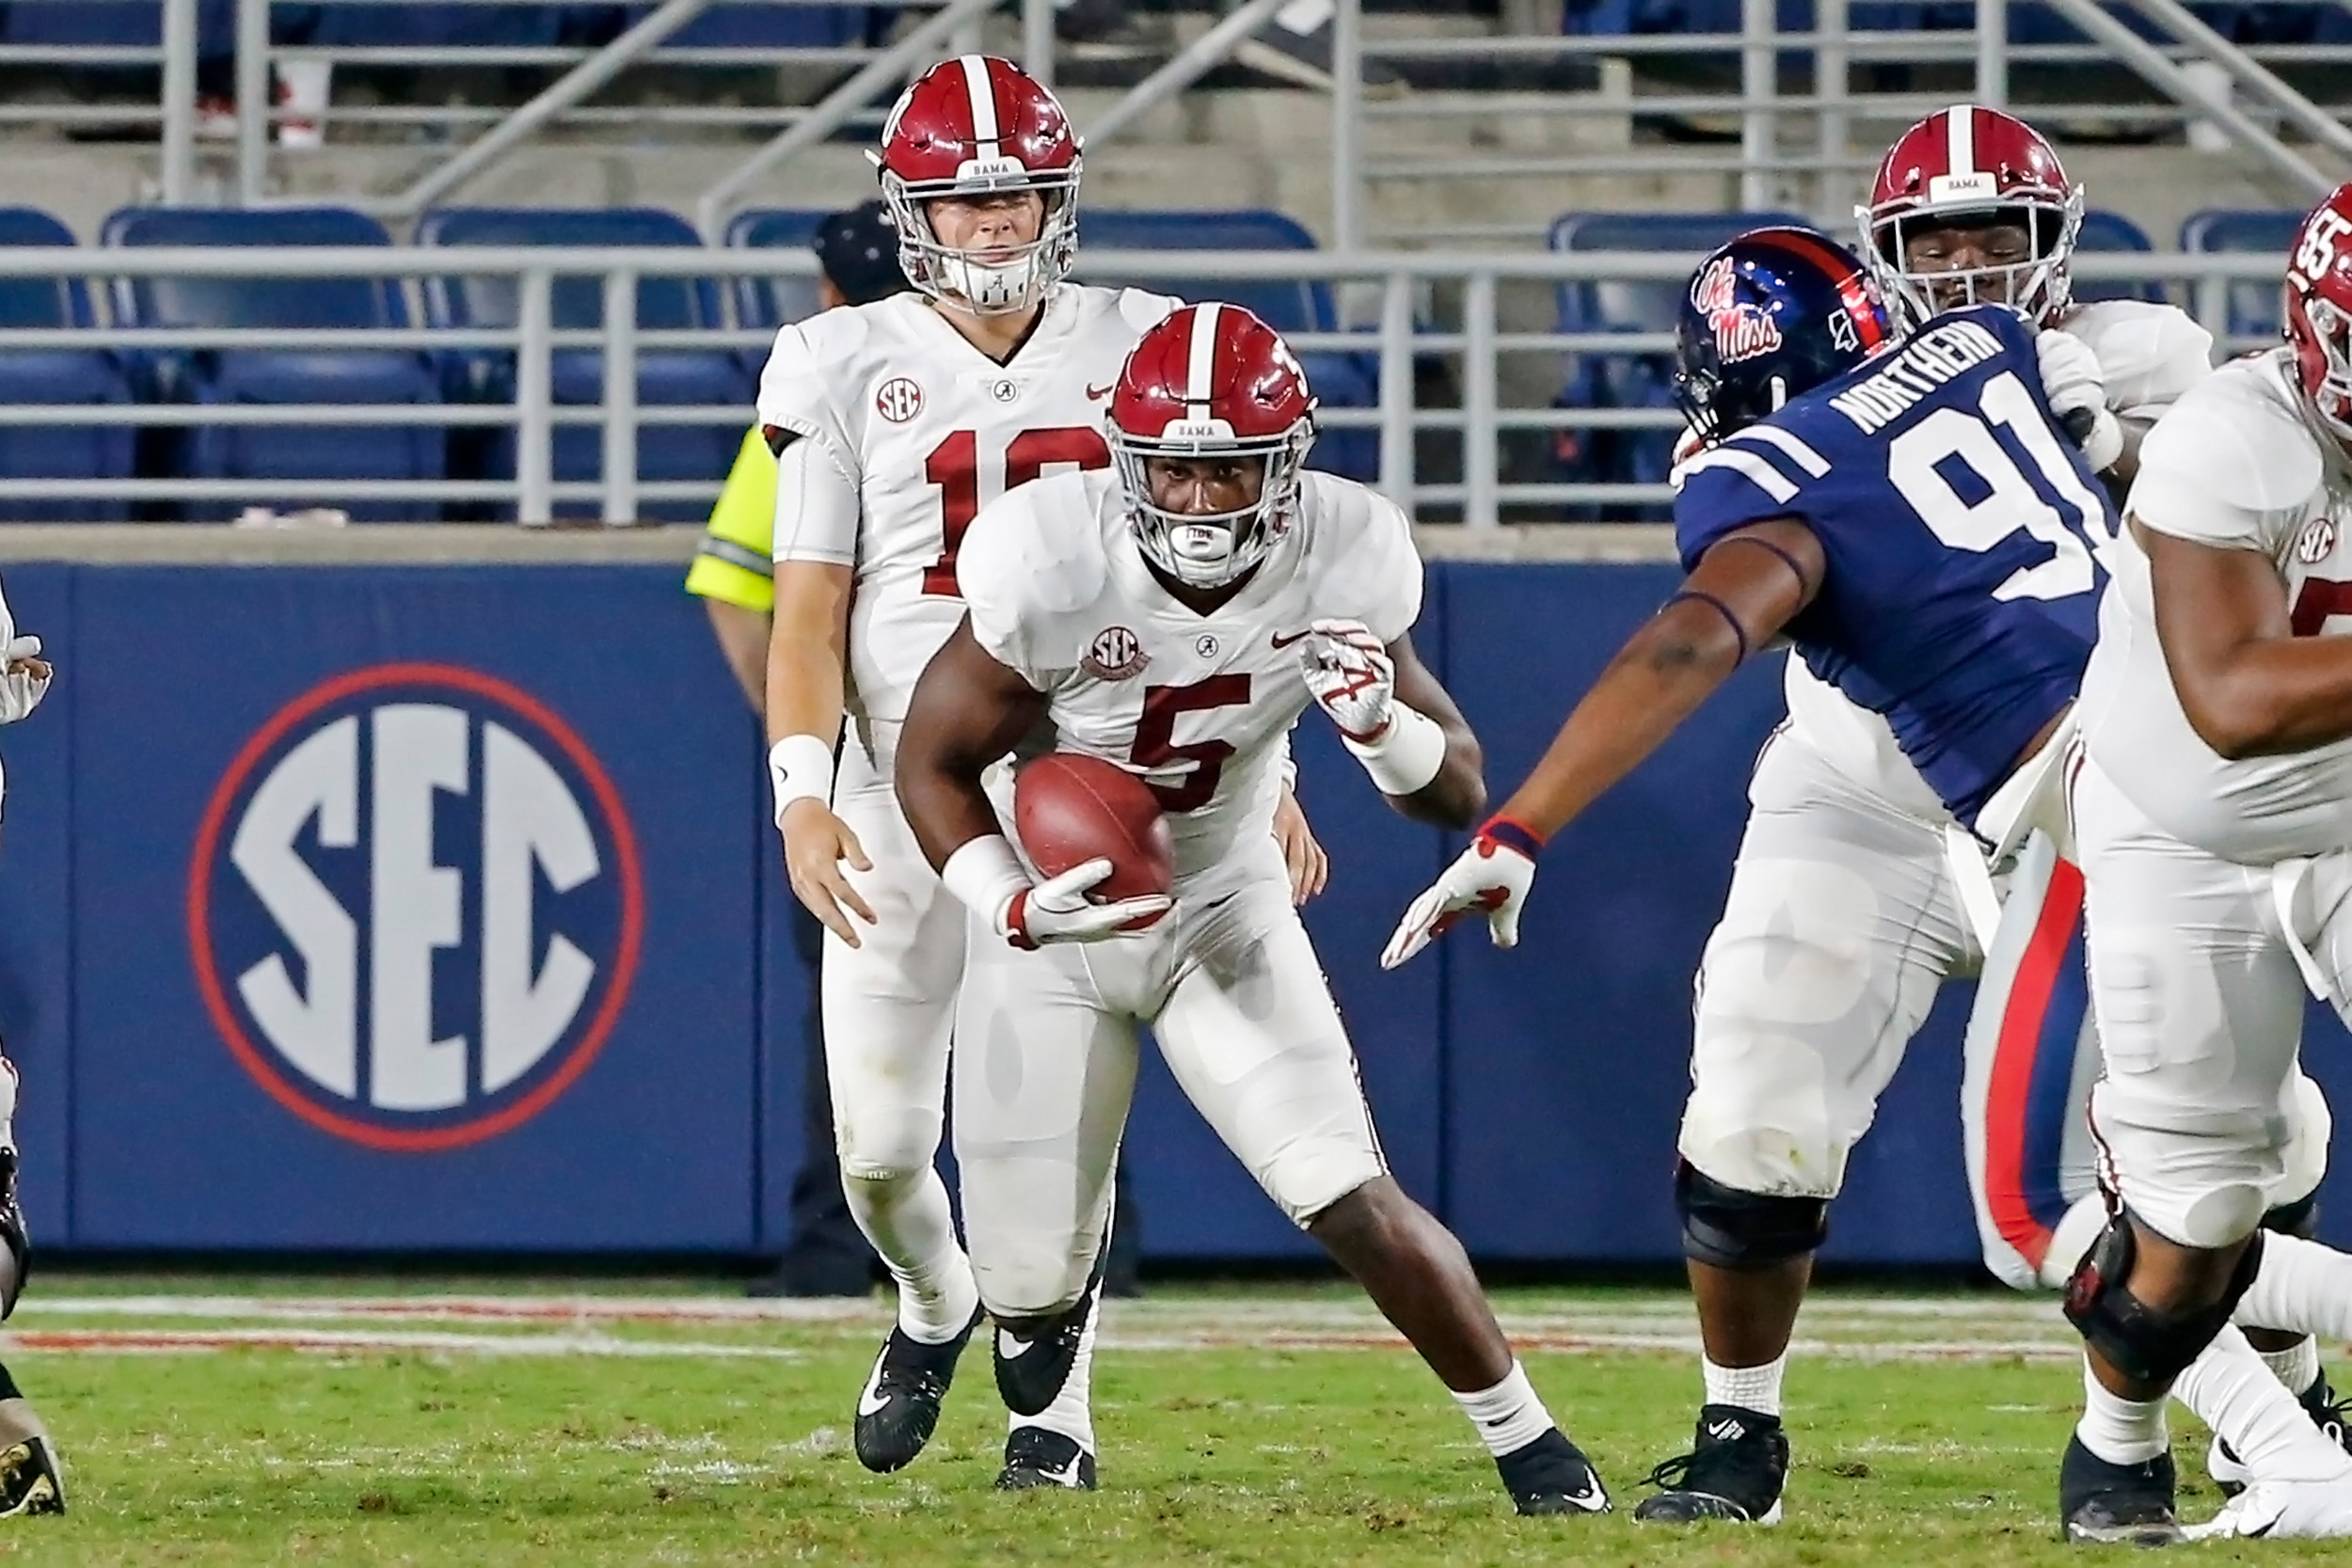 Alabama Crimson Tide running back Ronnie Clark (5) rushes during the game between the University of Alabama and Ole Miss at Vaught-Hemingway Stadium. Jason Clark / Daily Mountain Eagle